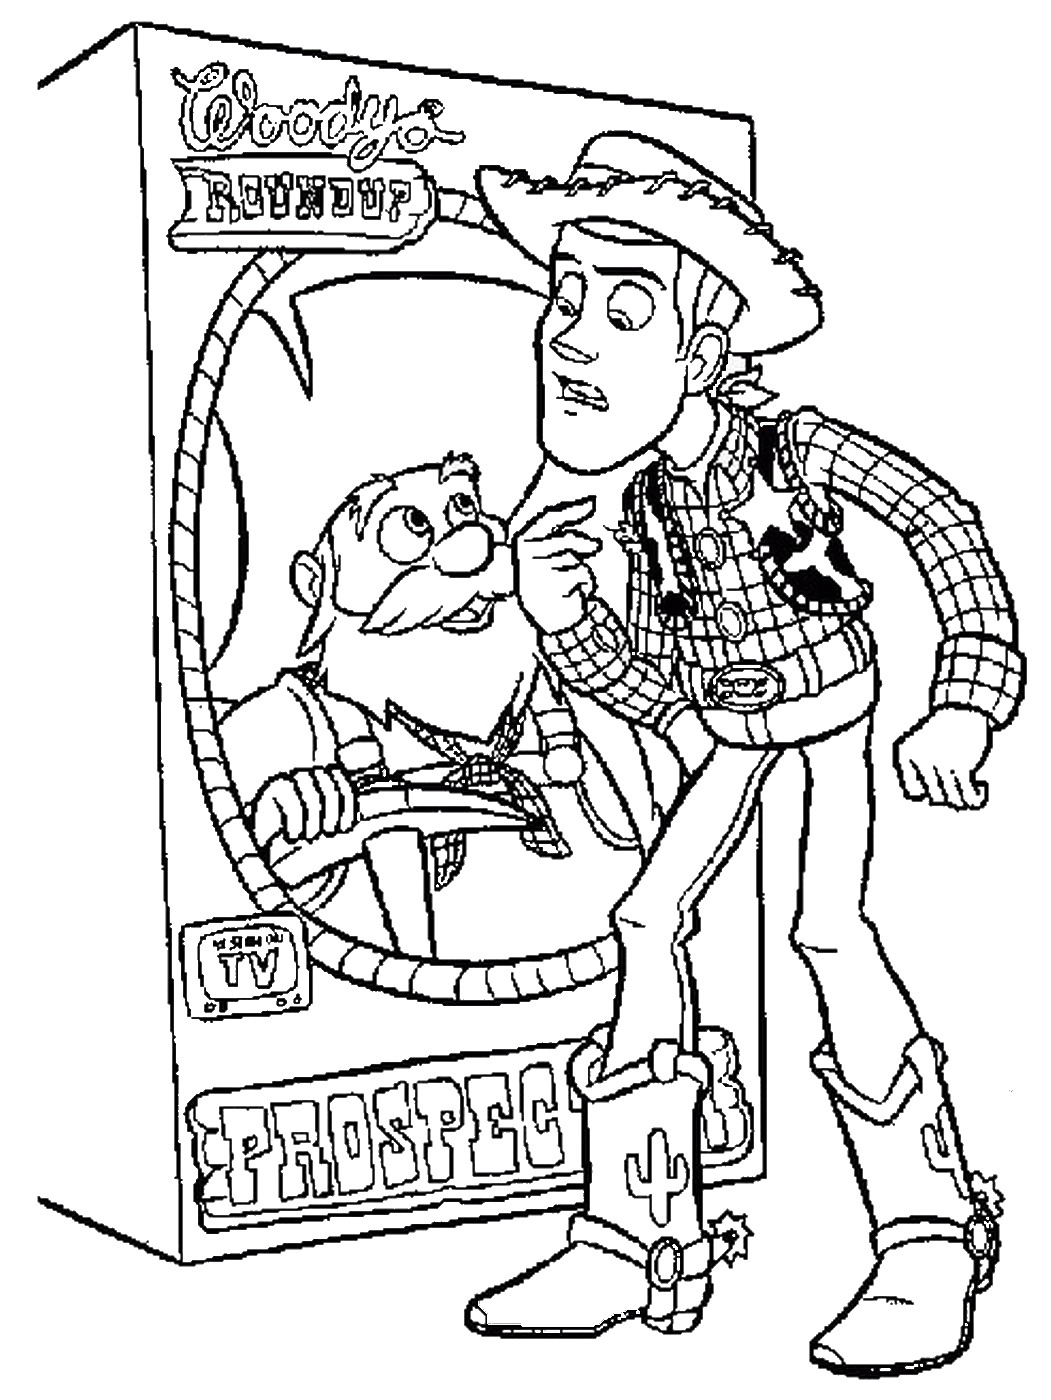 toy story coloring pages free printable toy story coloring pages for kids coloring toy story pages